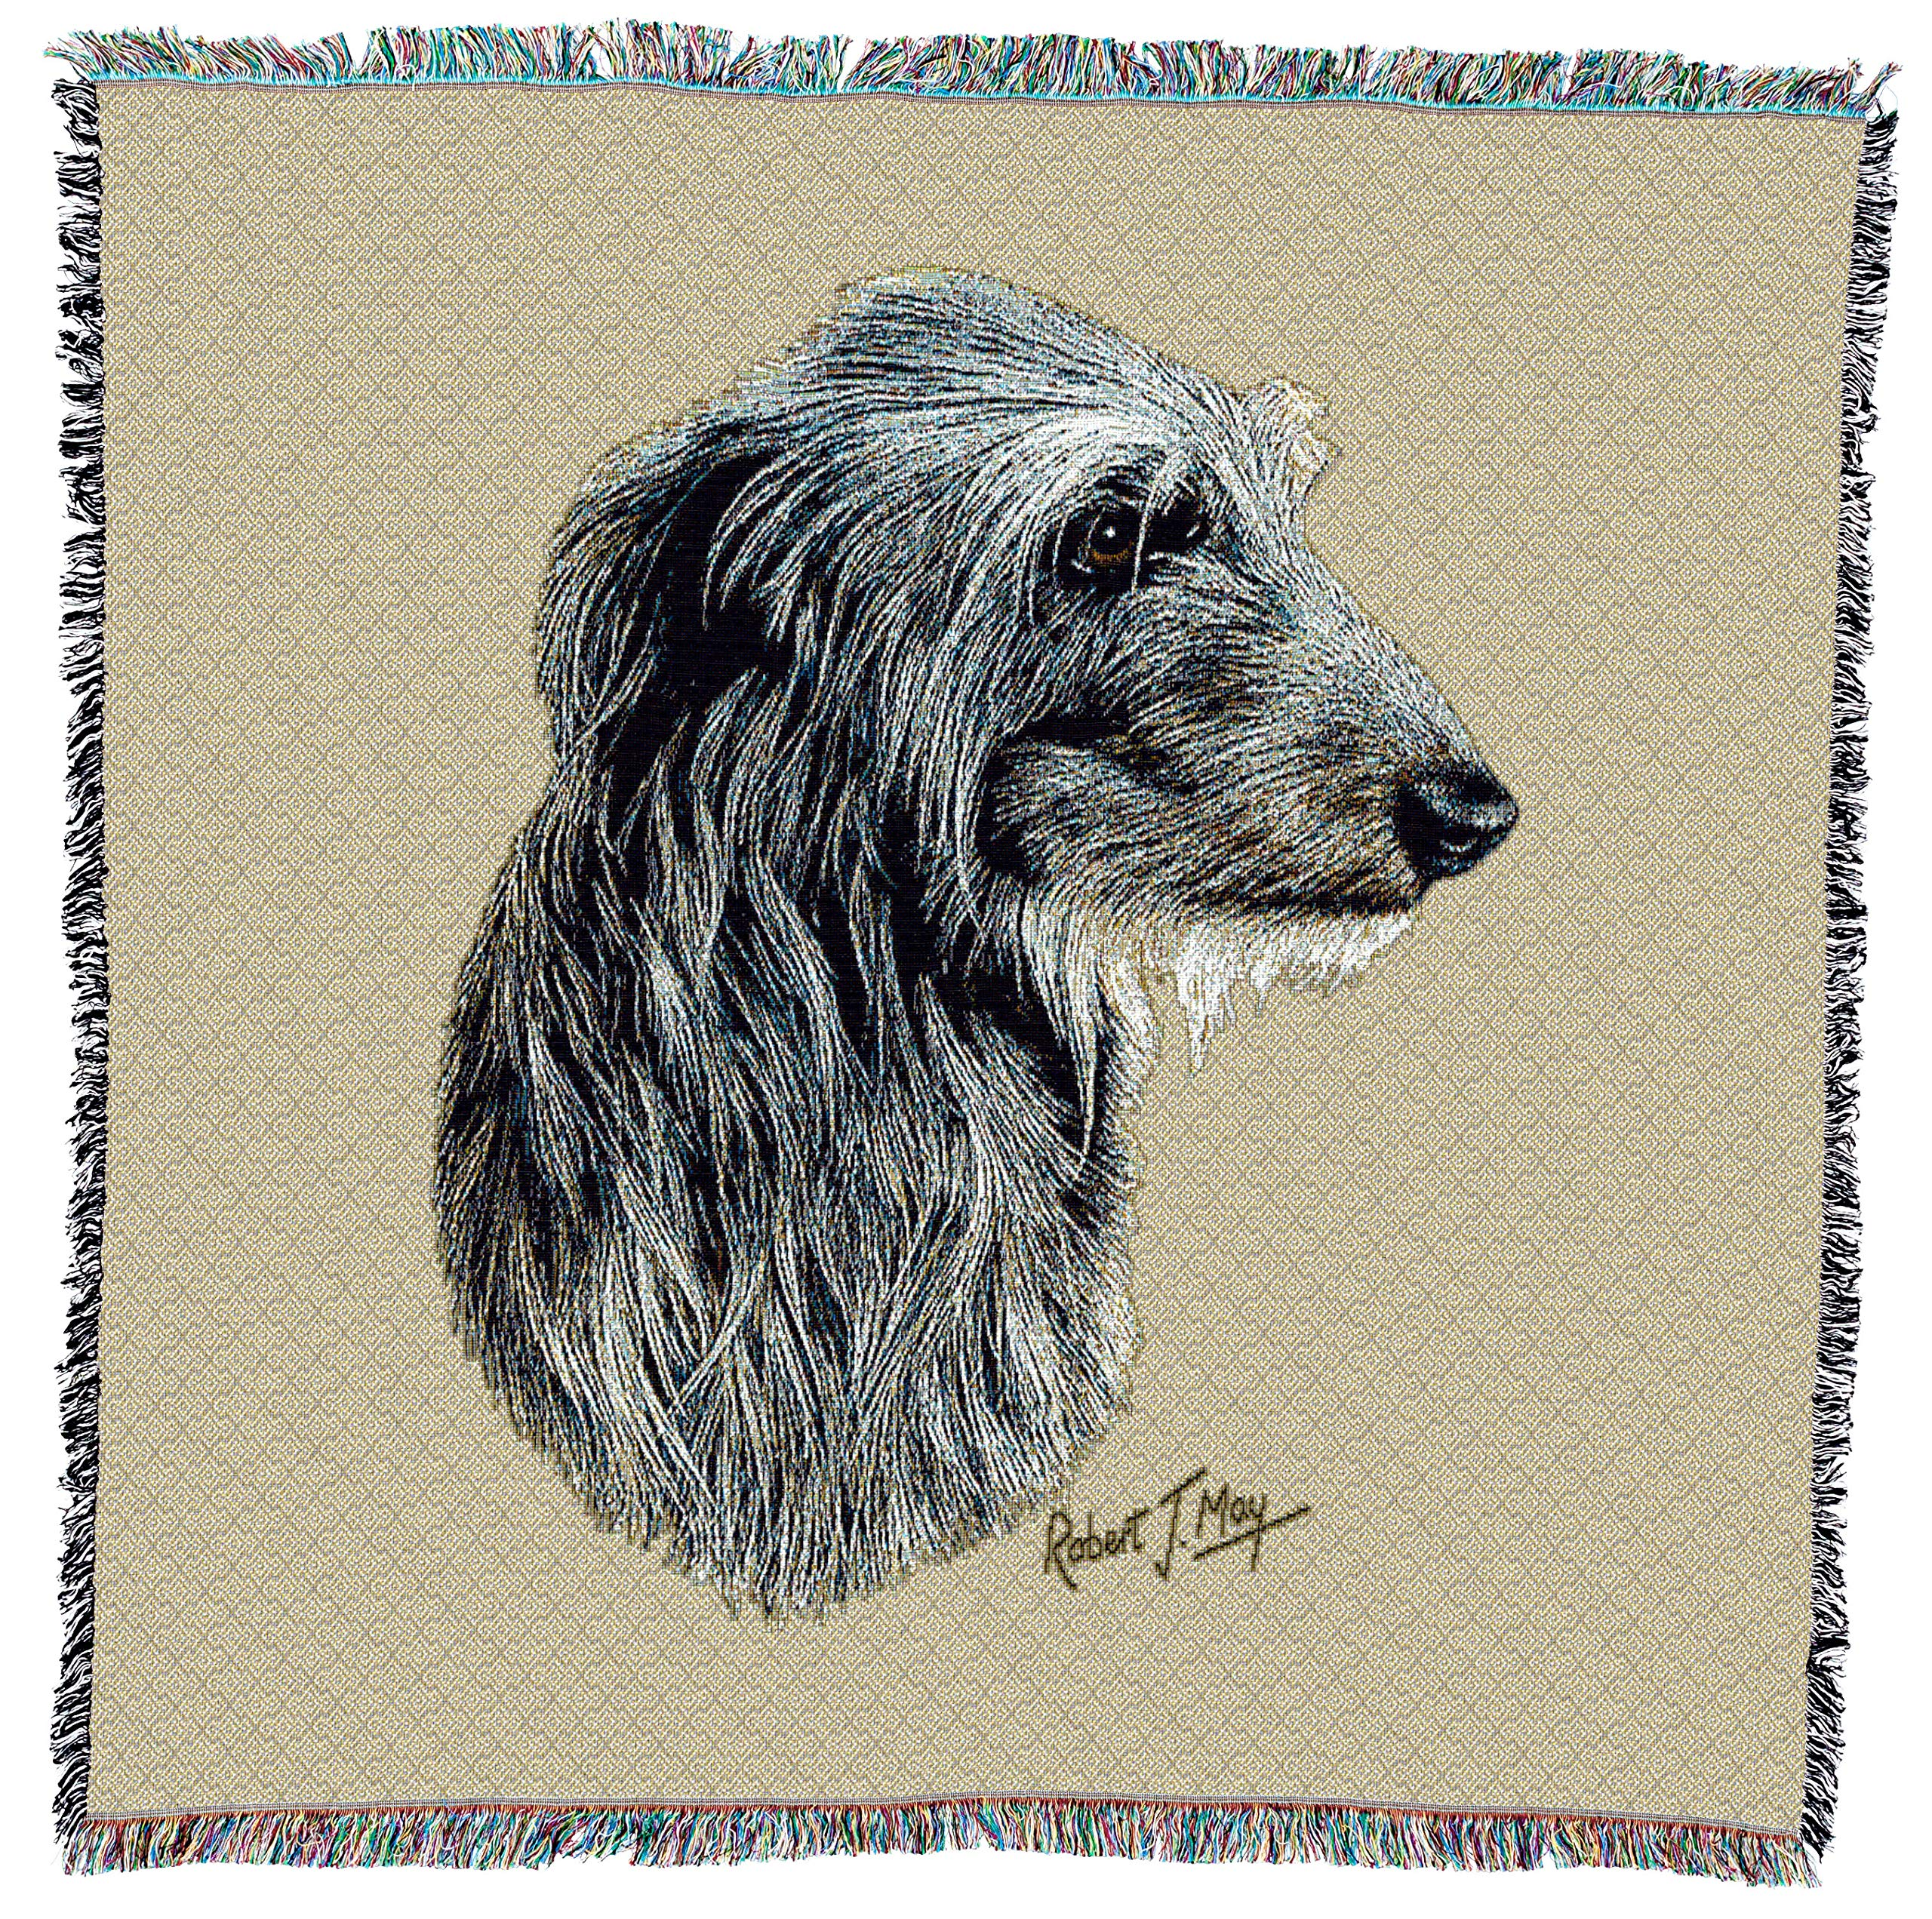 Pure Country Weavers - Scottish Deerhound Woven Throw Blanket with Fringe Cotton. USA Size 54x54